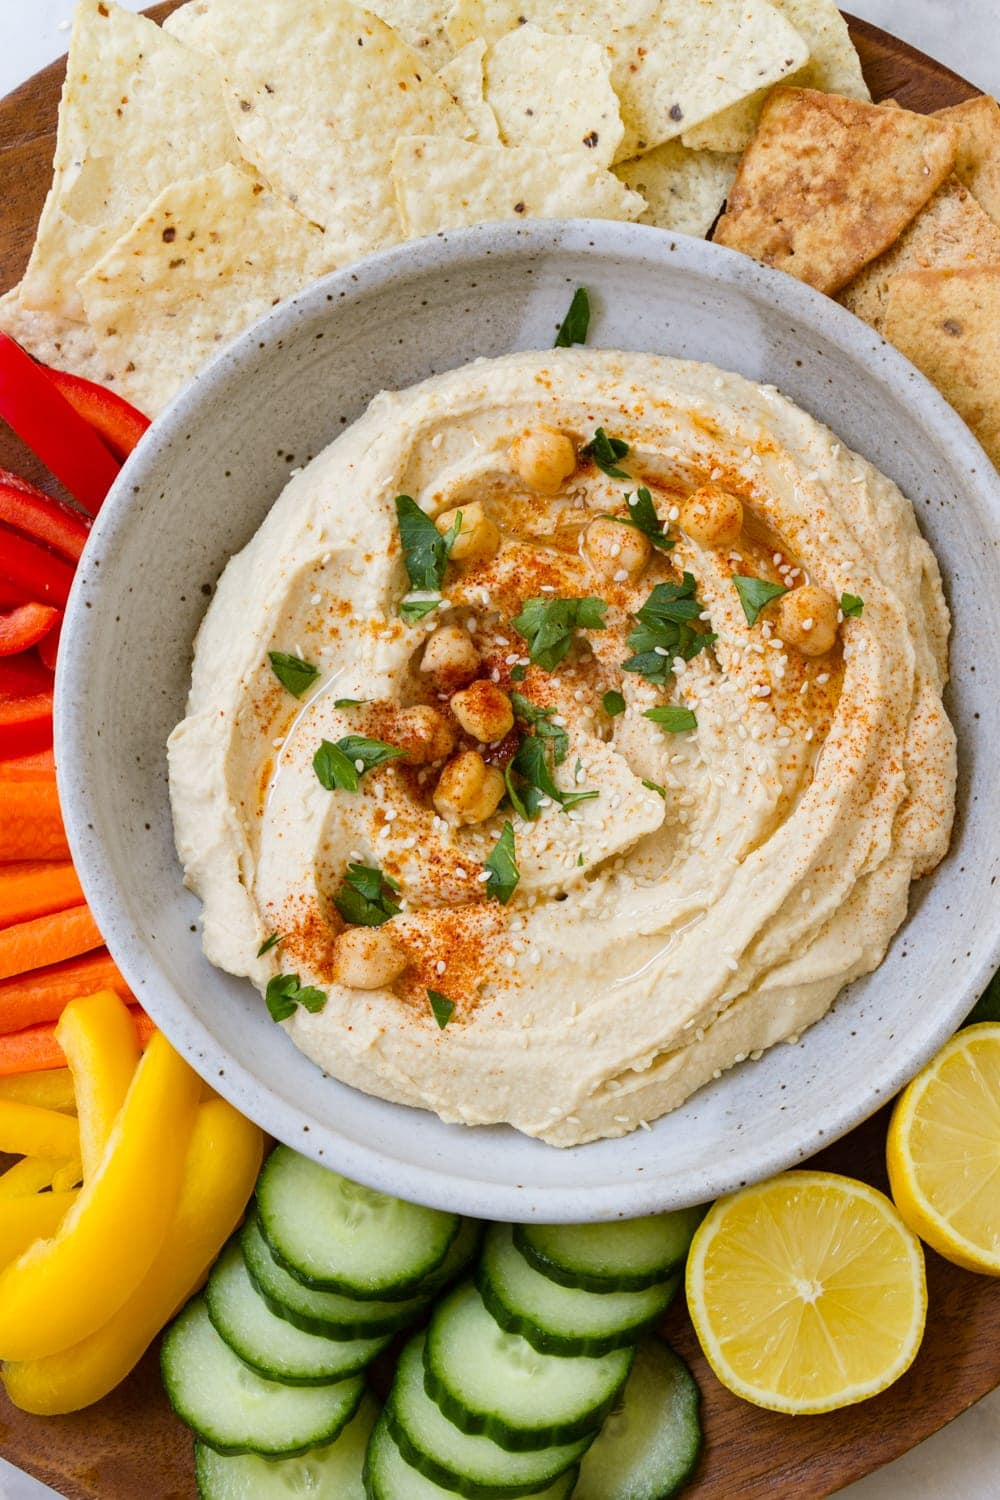 top down view of best authentic hummus in a bowl topped with parsley, chickpeas and paprika, and surrounded by chips and sliced vegetables for dipping.